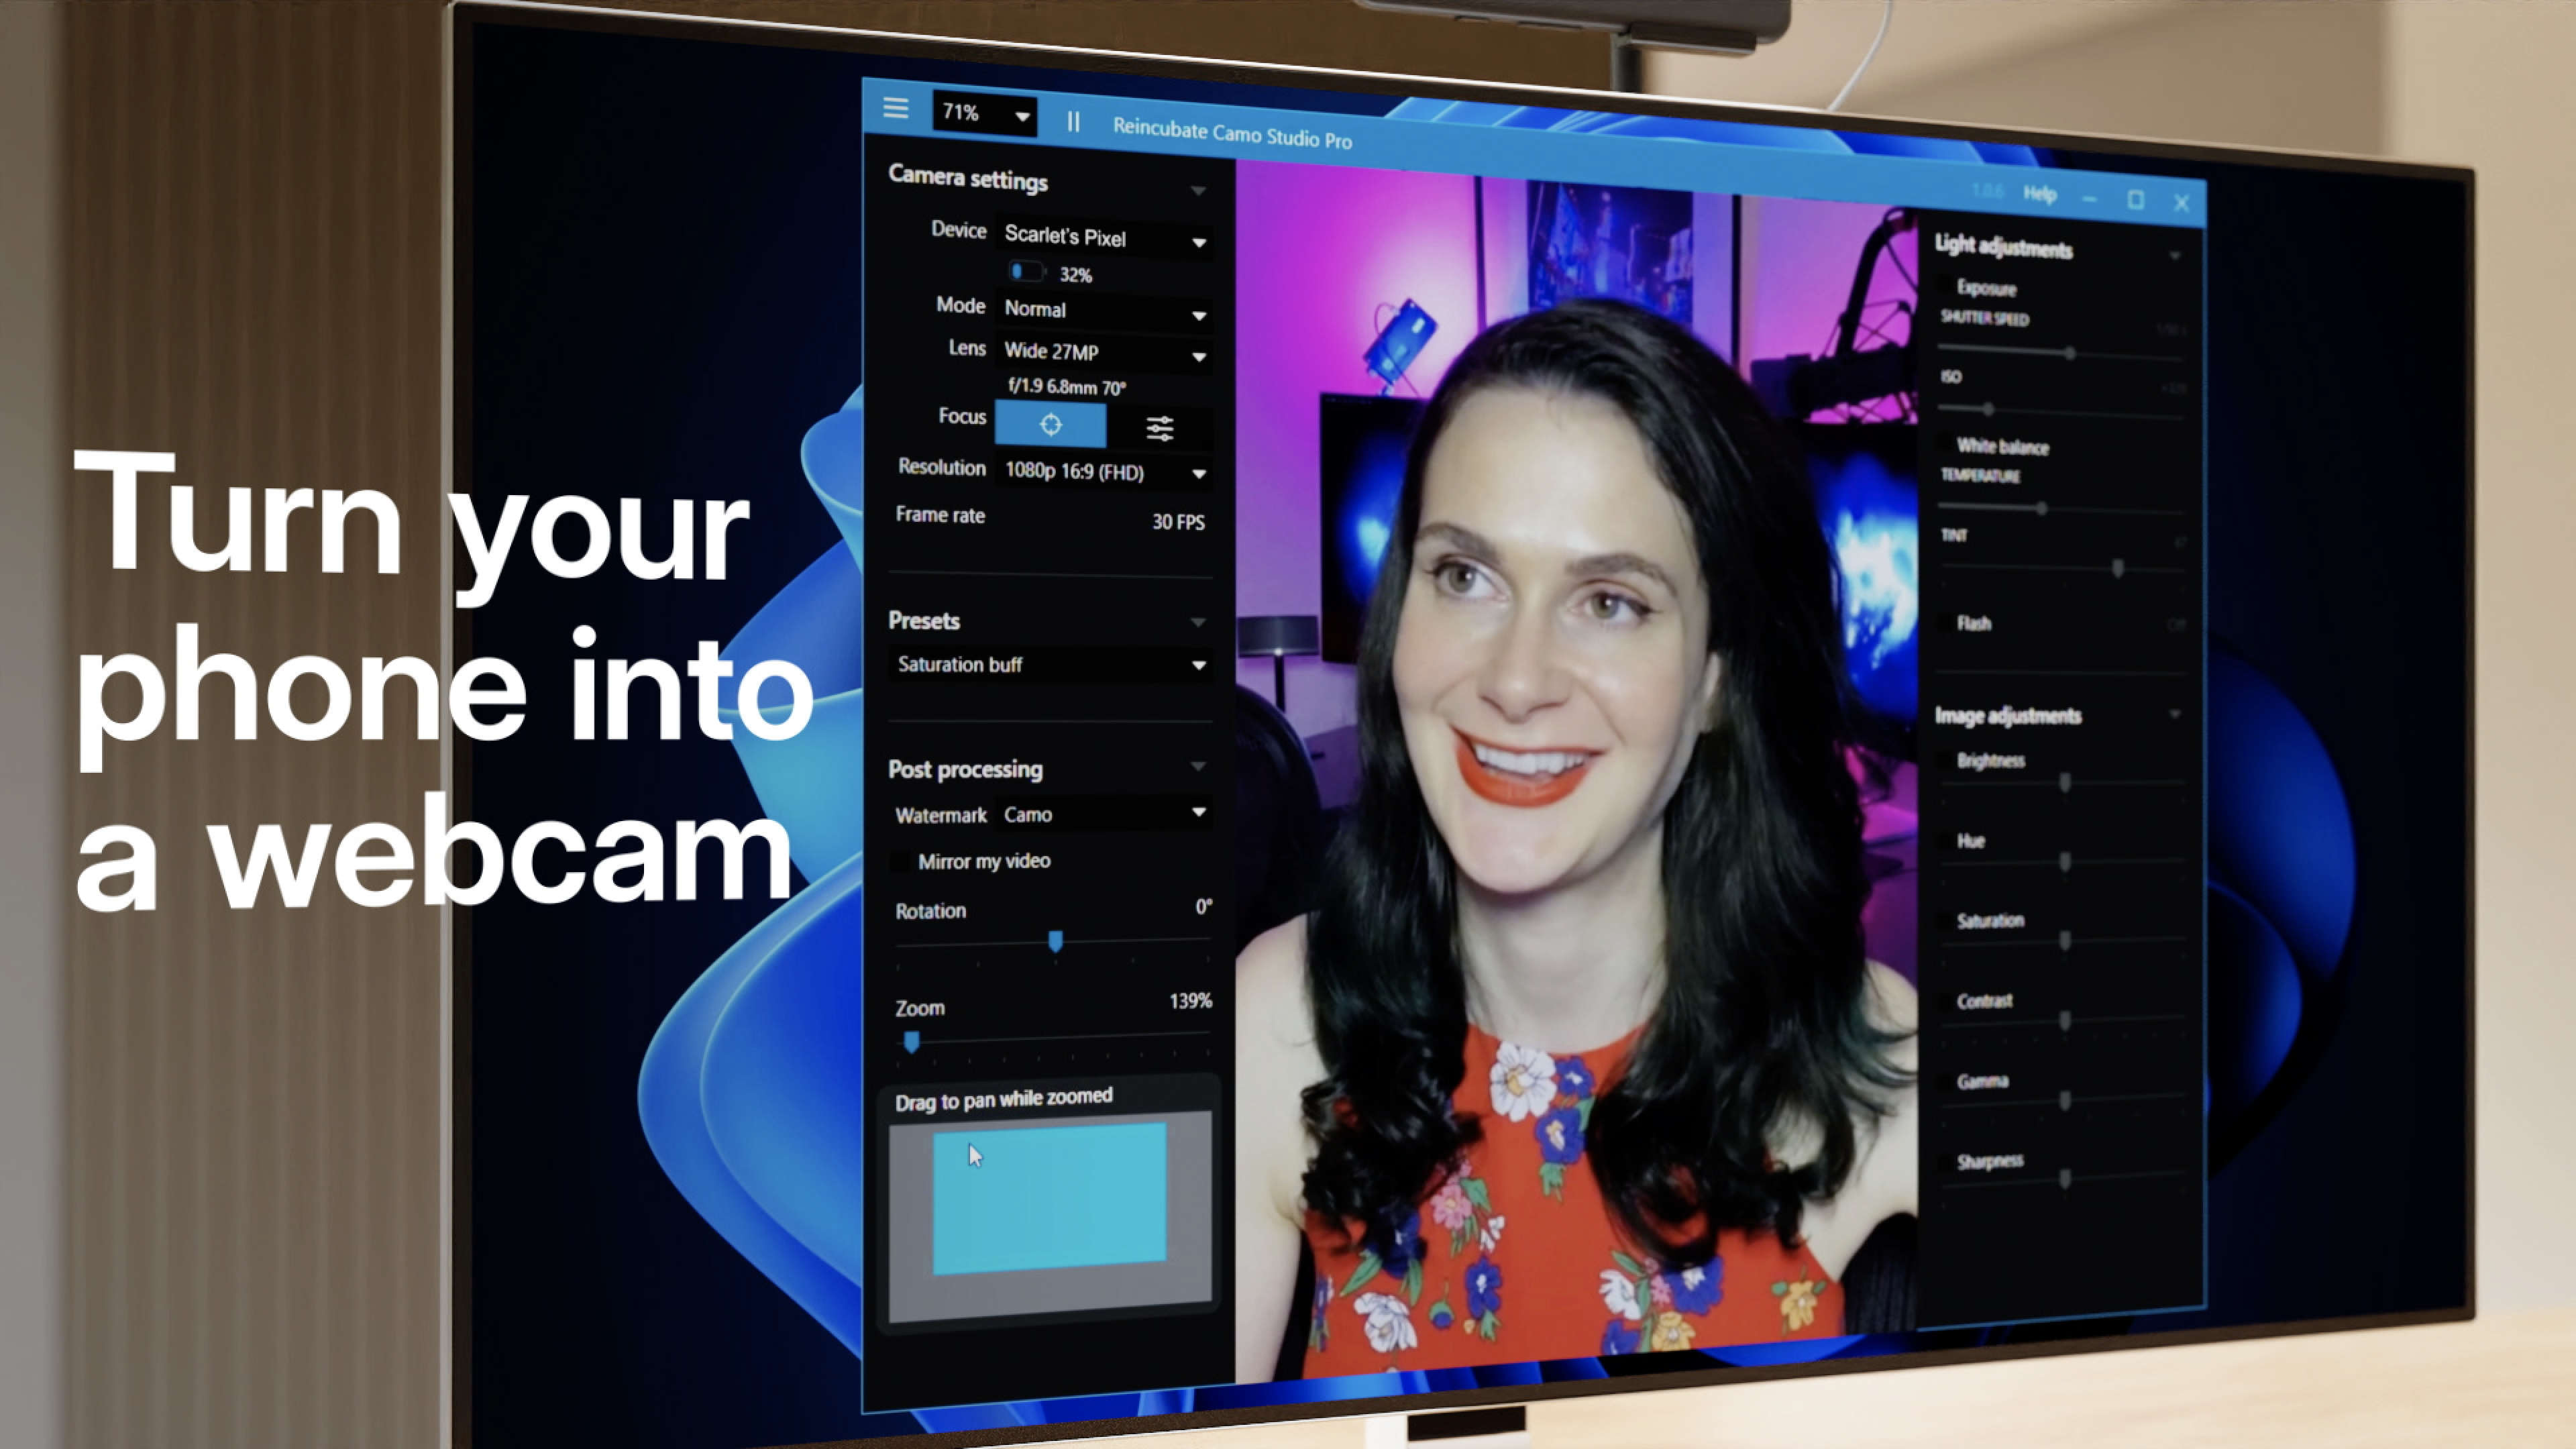 Reincubate's Camo, the Popular App that turns iPhones into World Class Webcams for MACs & PCs, is now available for Android User